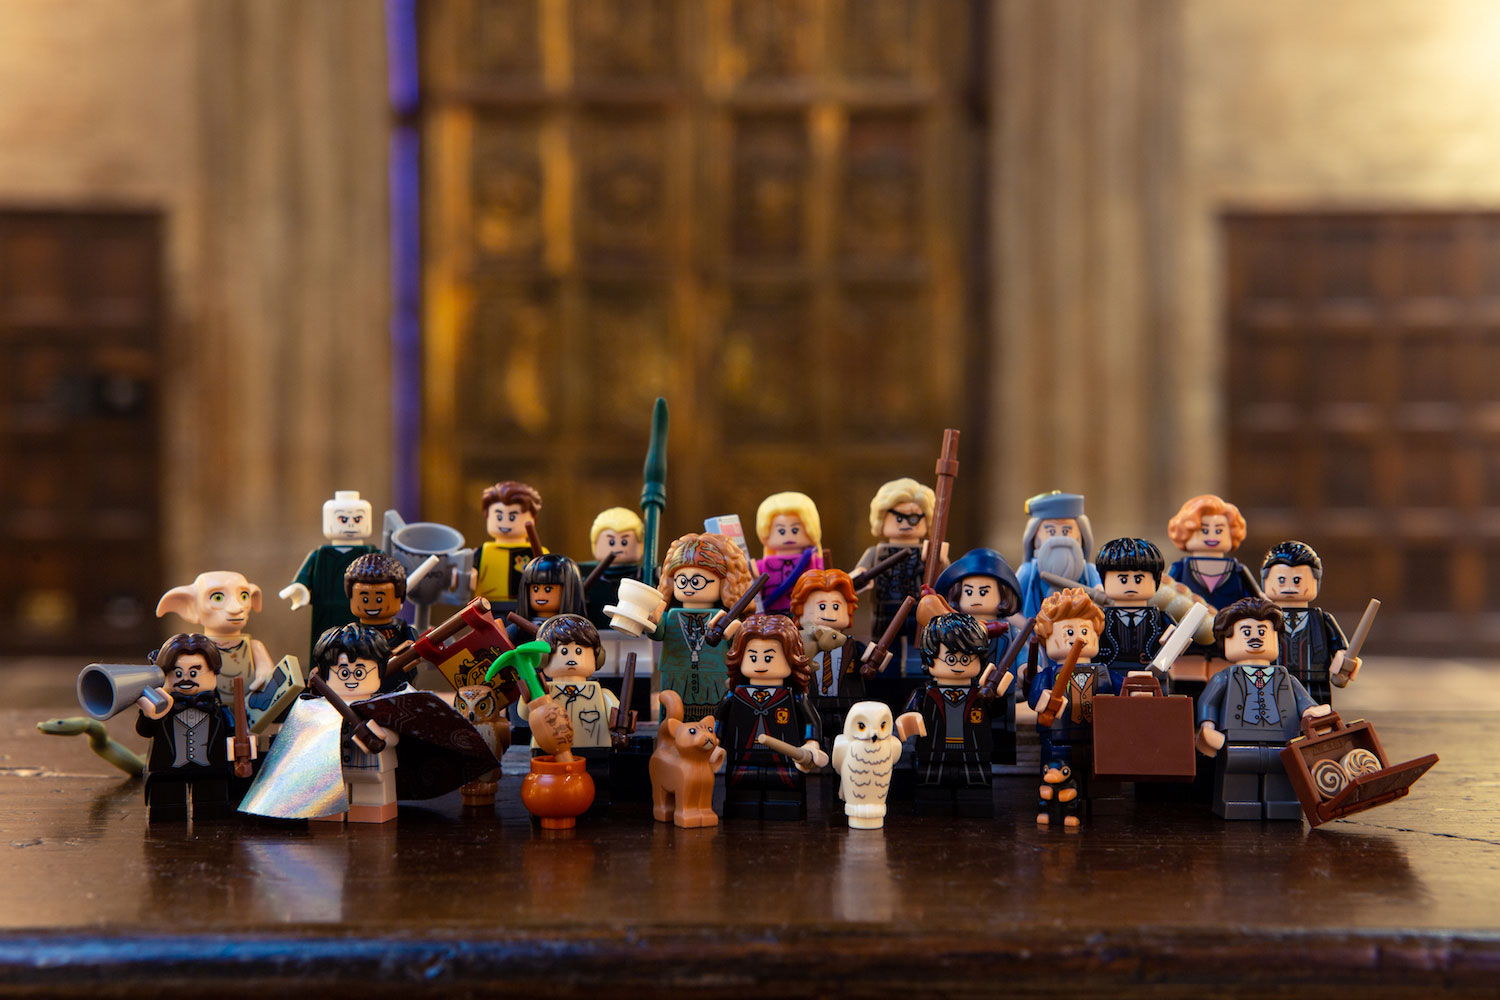 The complete LEGO minifigures wizarding world series – characters and props – is displayed at the Studio Tour.